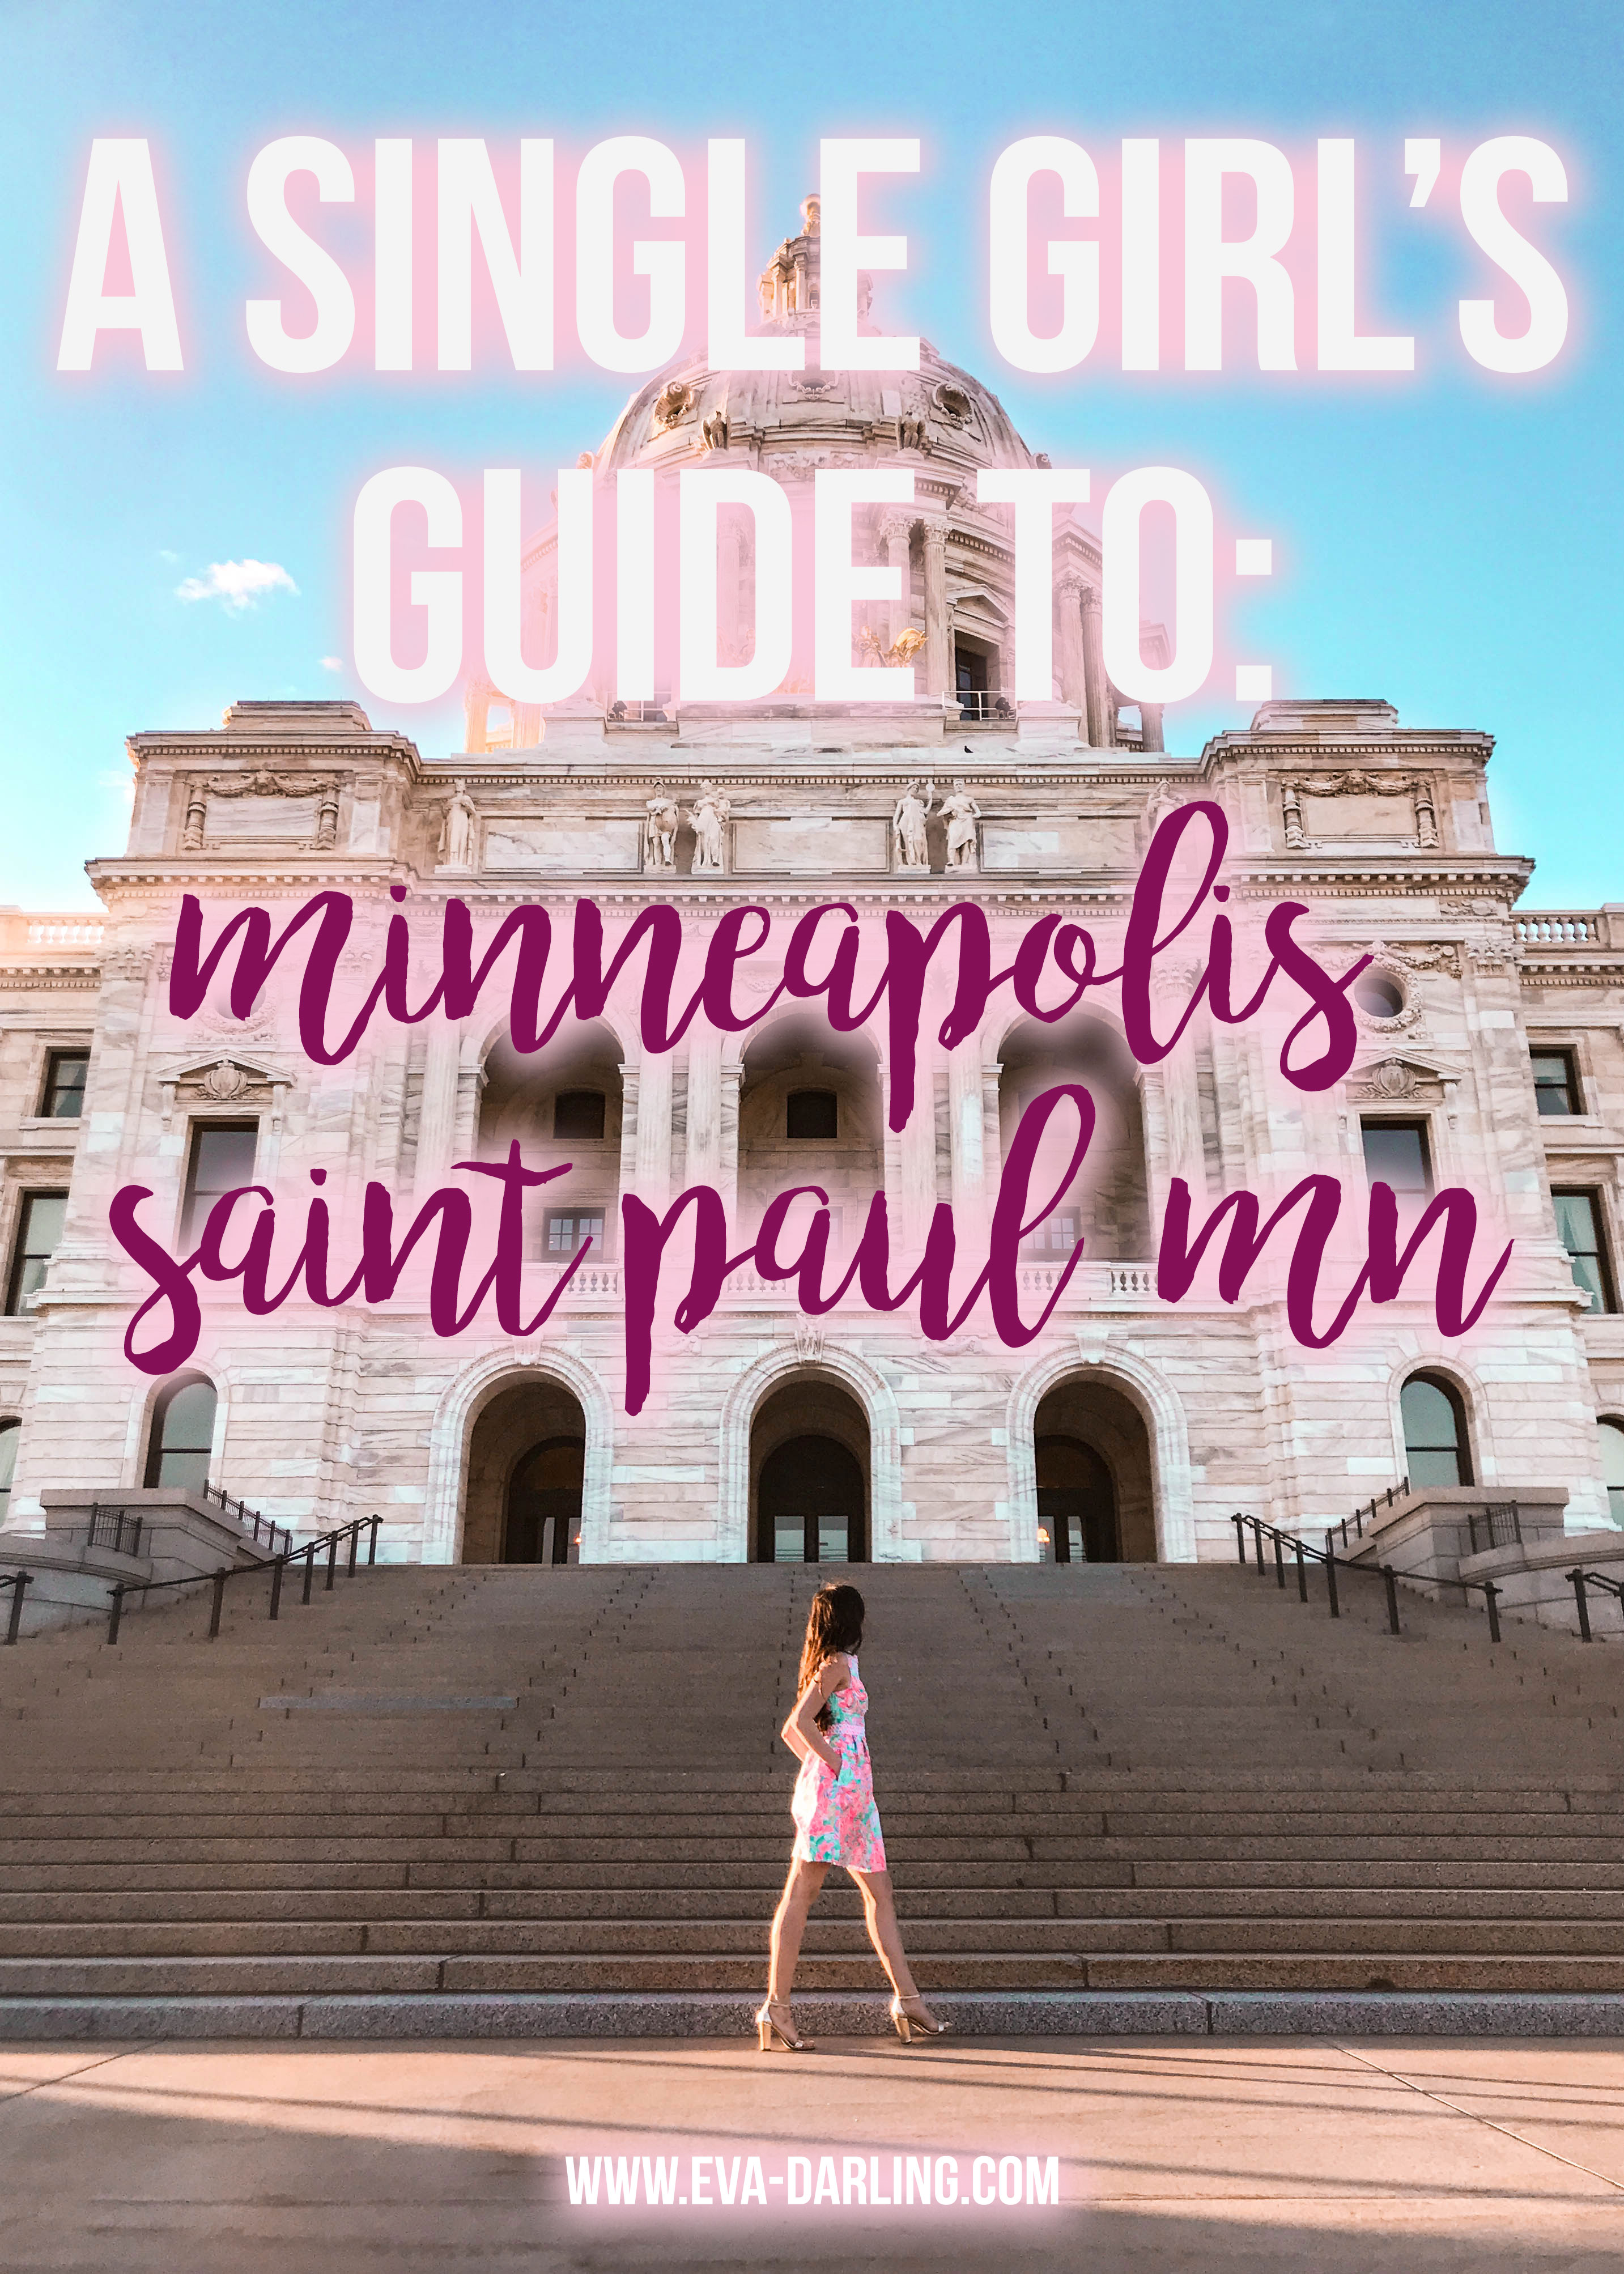 a single girl's guide to minneapolis saint paul st paul minnesota mn where to go in minnesota midwest travel destination instagrammable spot mn where to take photos in msp lilly pulitzer franci dress travel blogger eva phan of eva darling solo female travel traveler travel guide minnesota state capitol